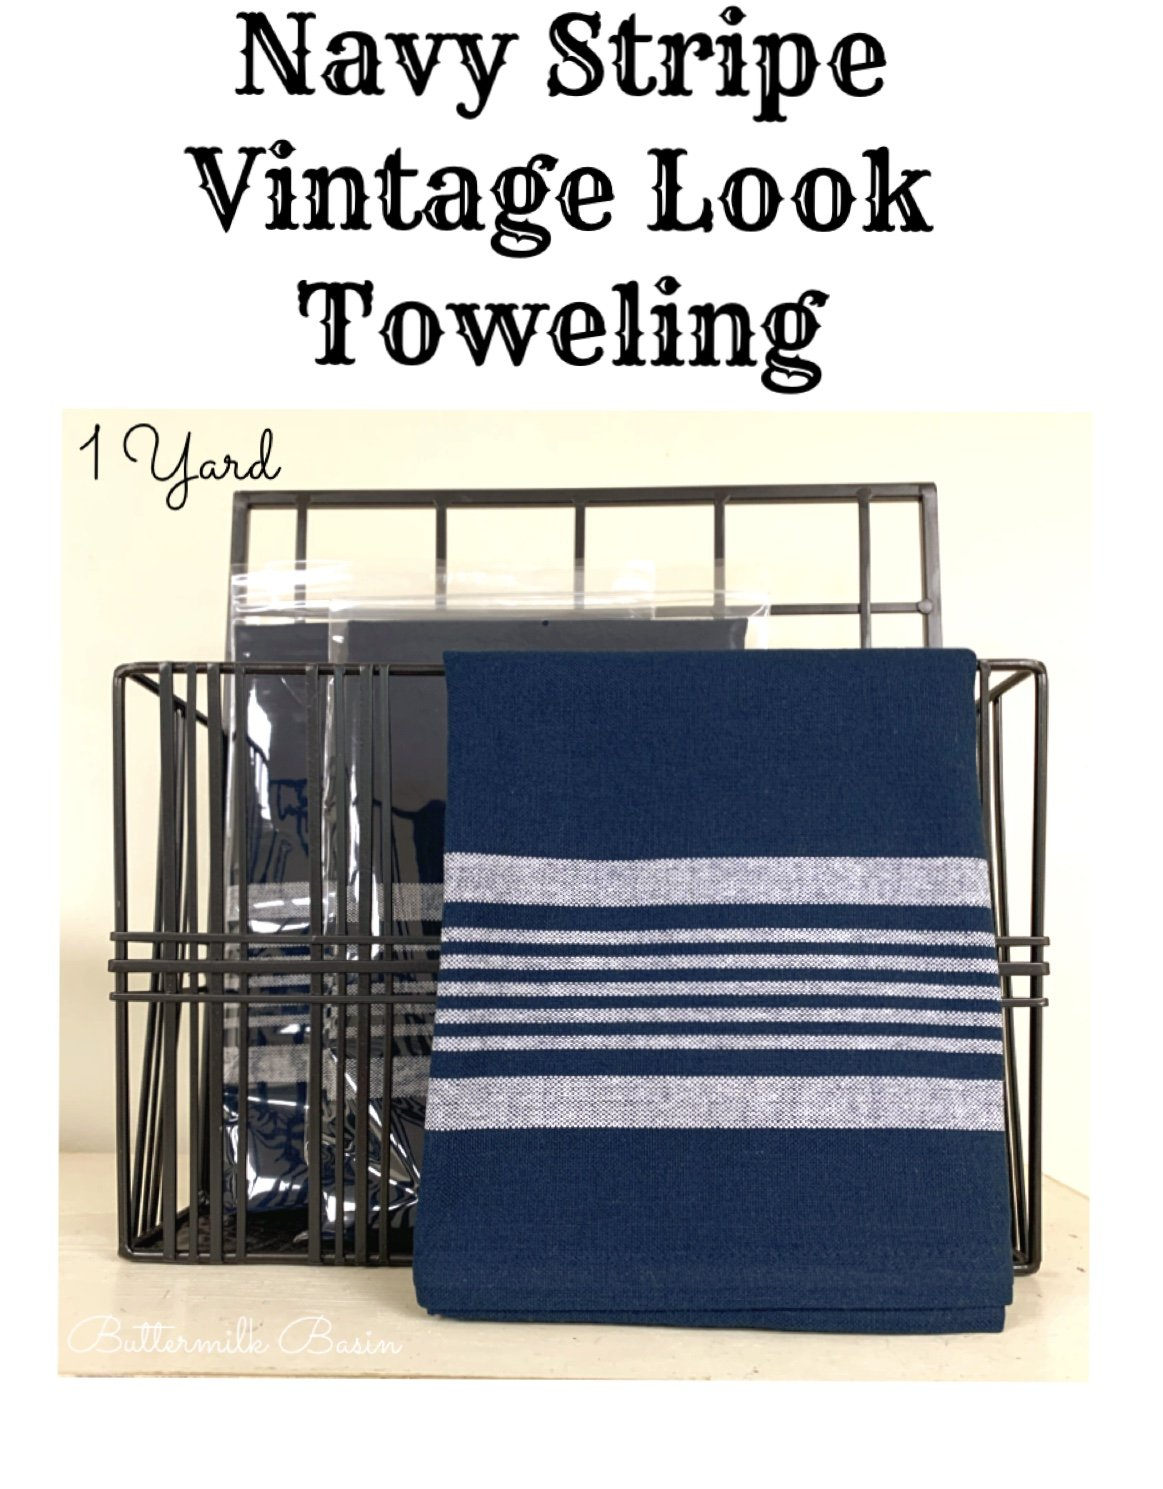 Navy Stripe Vintage Look Toweling